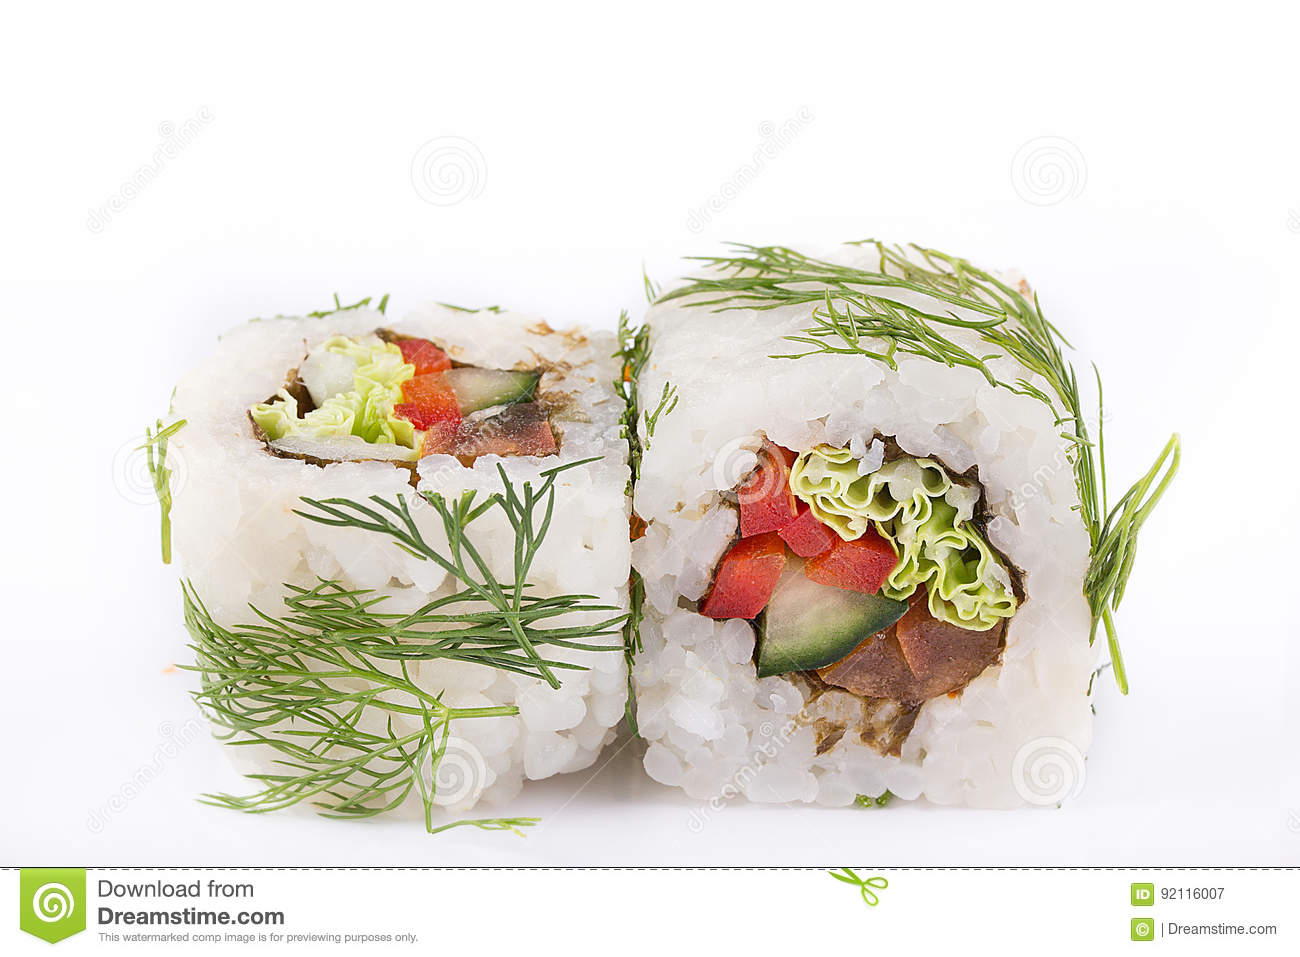 Cucina Giapponese Cinese Cucina Giapponese Sushi Messo Rotolo Vegetariano Con Paprica Il